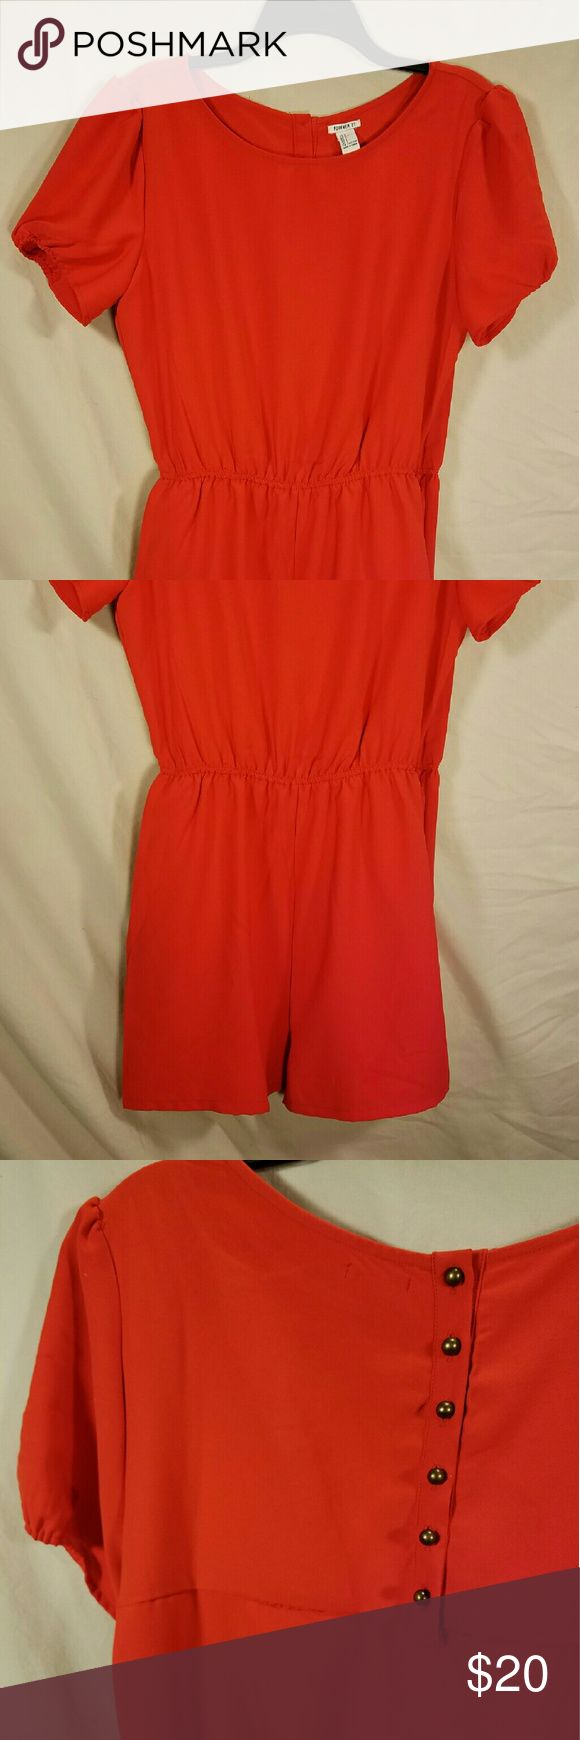 Classy Jumper This red-orange number is plain from the front with cute buttons down the back Forever 21 Other